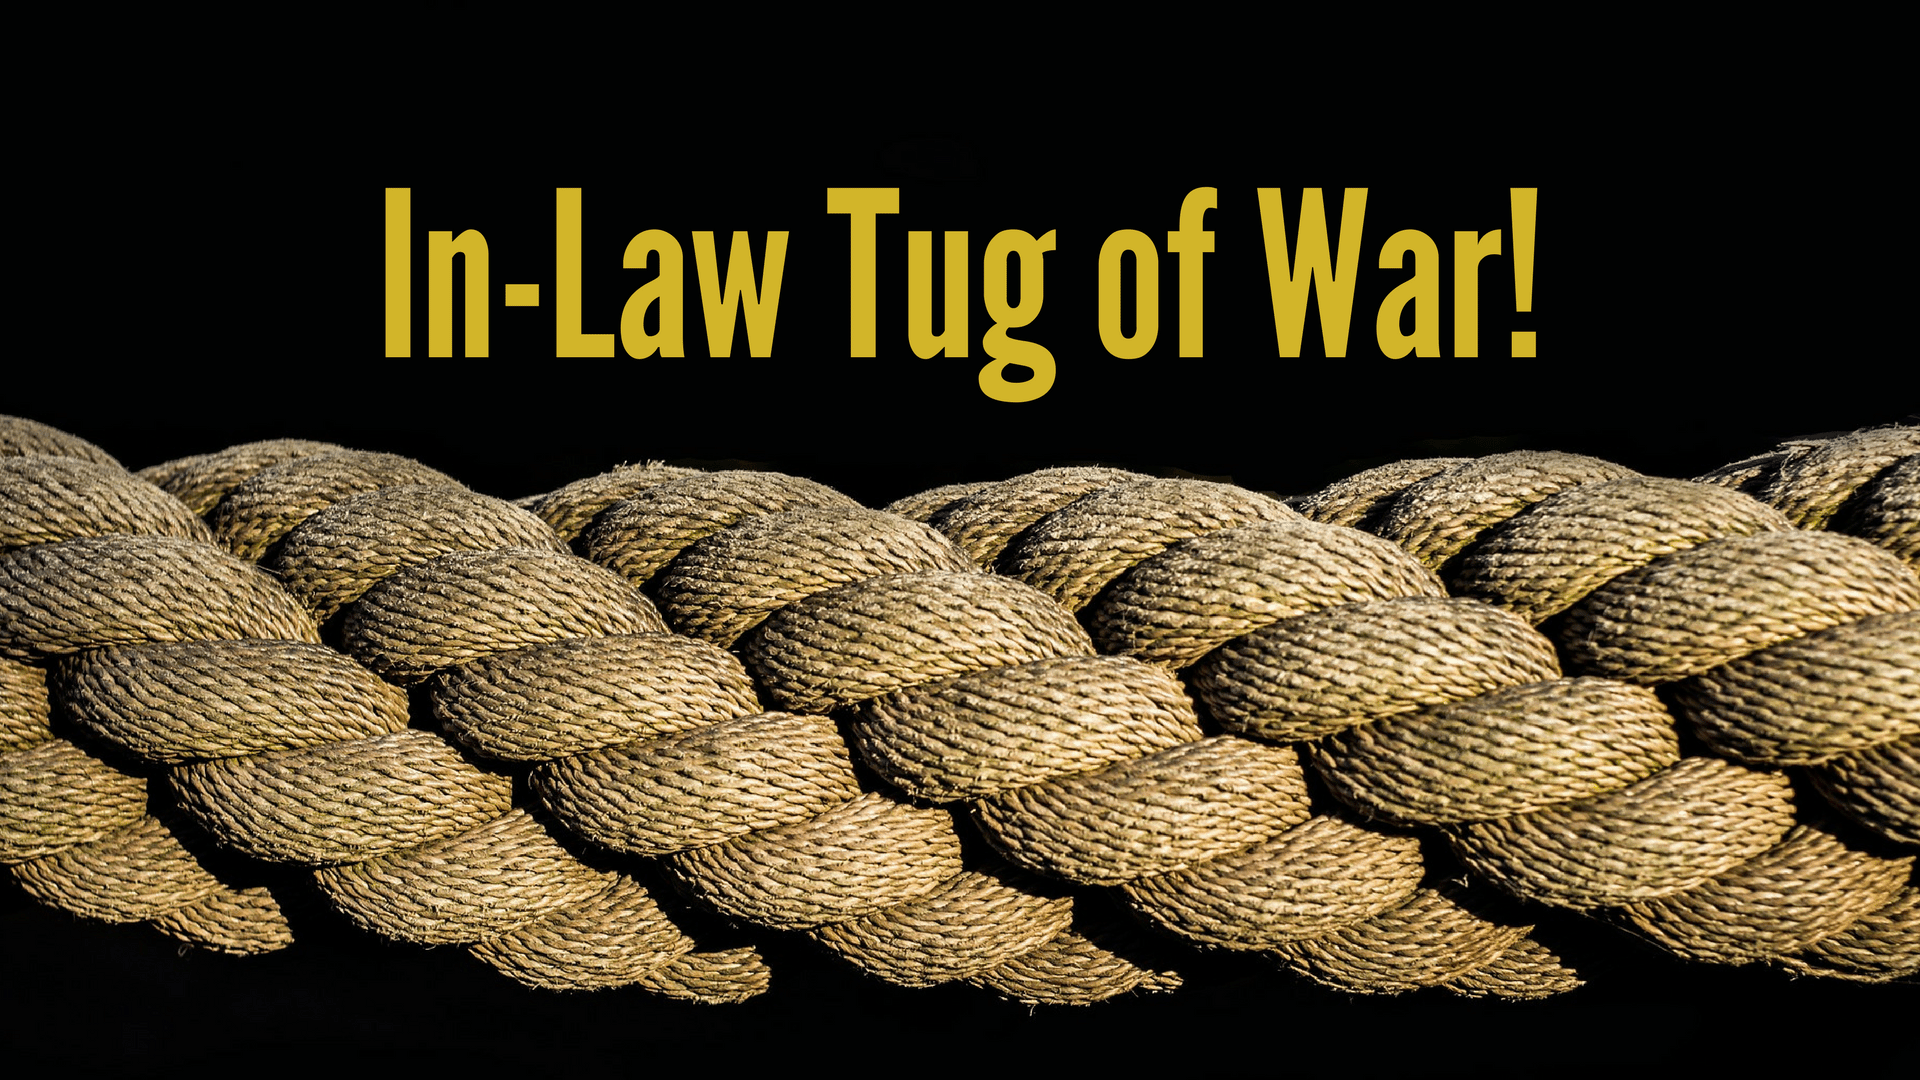 In Law Tug of War - Canva - Pixabay background